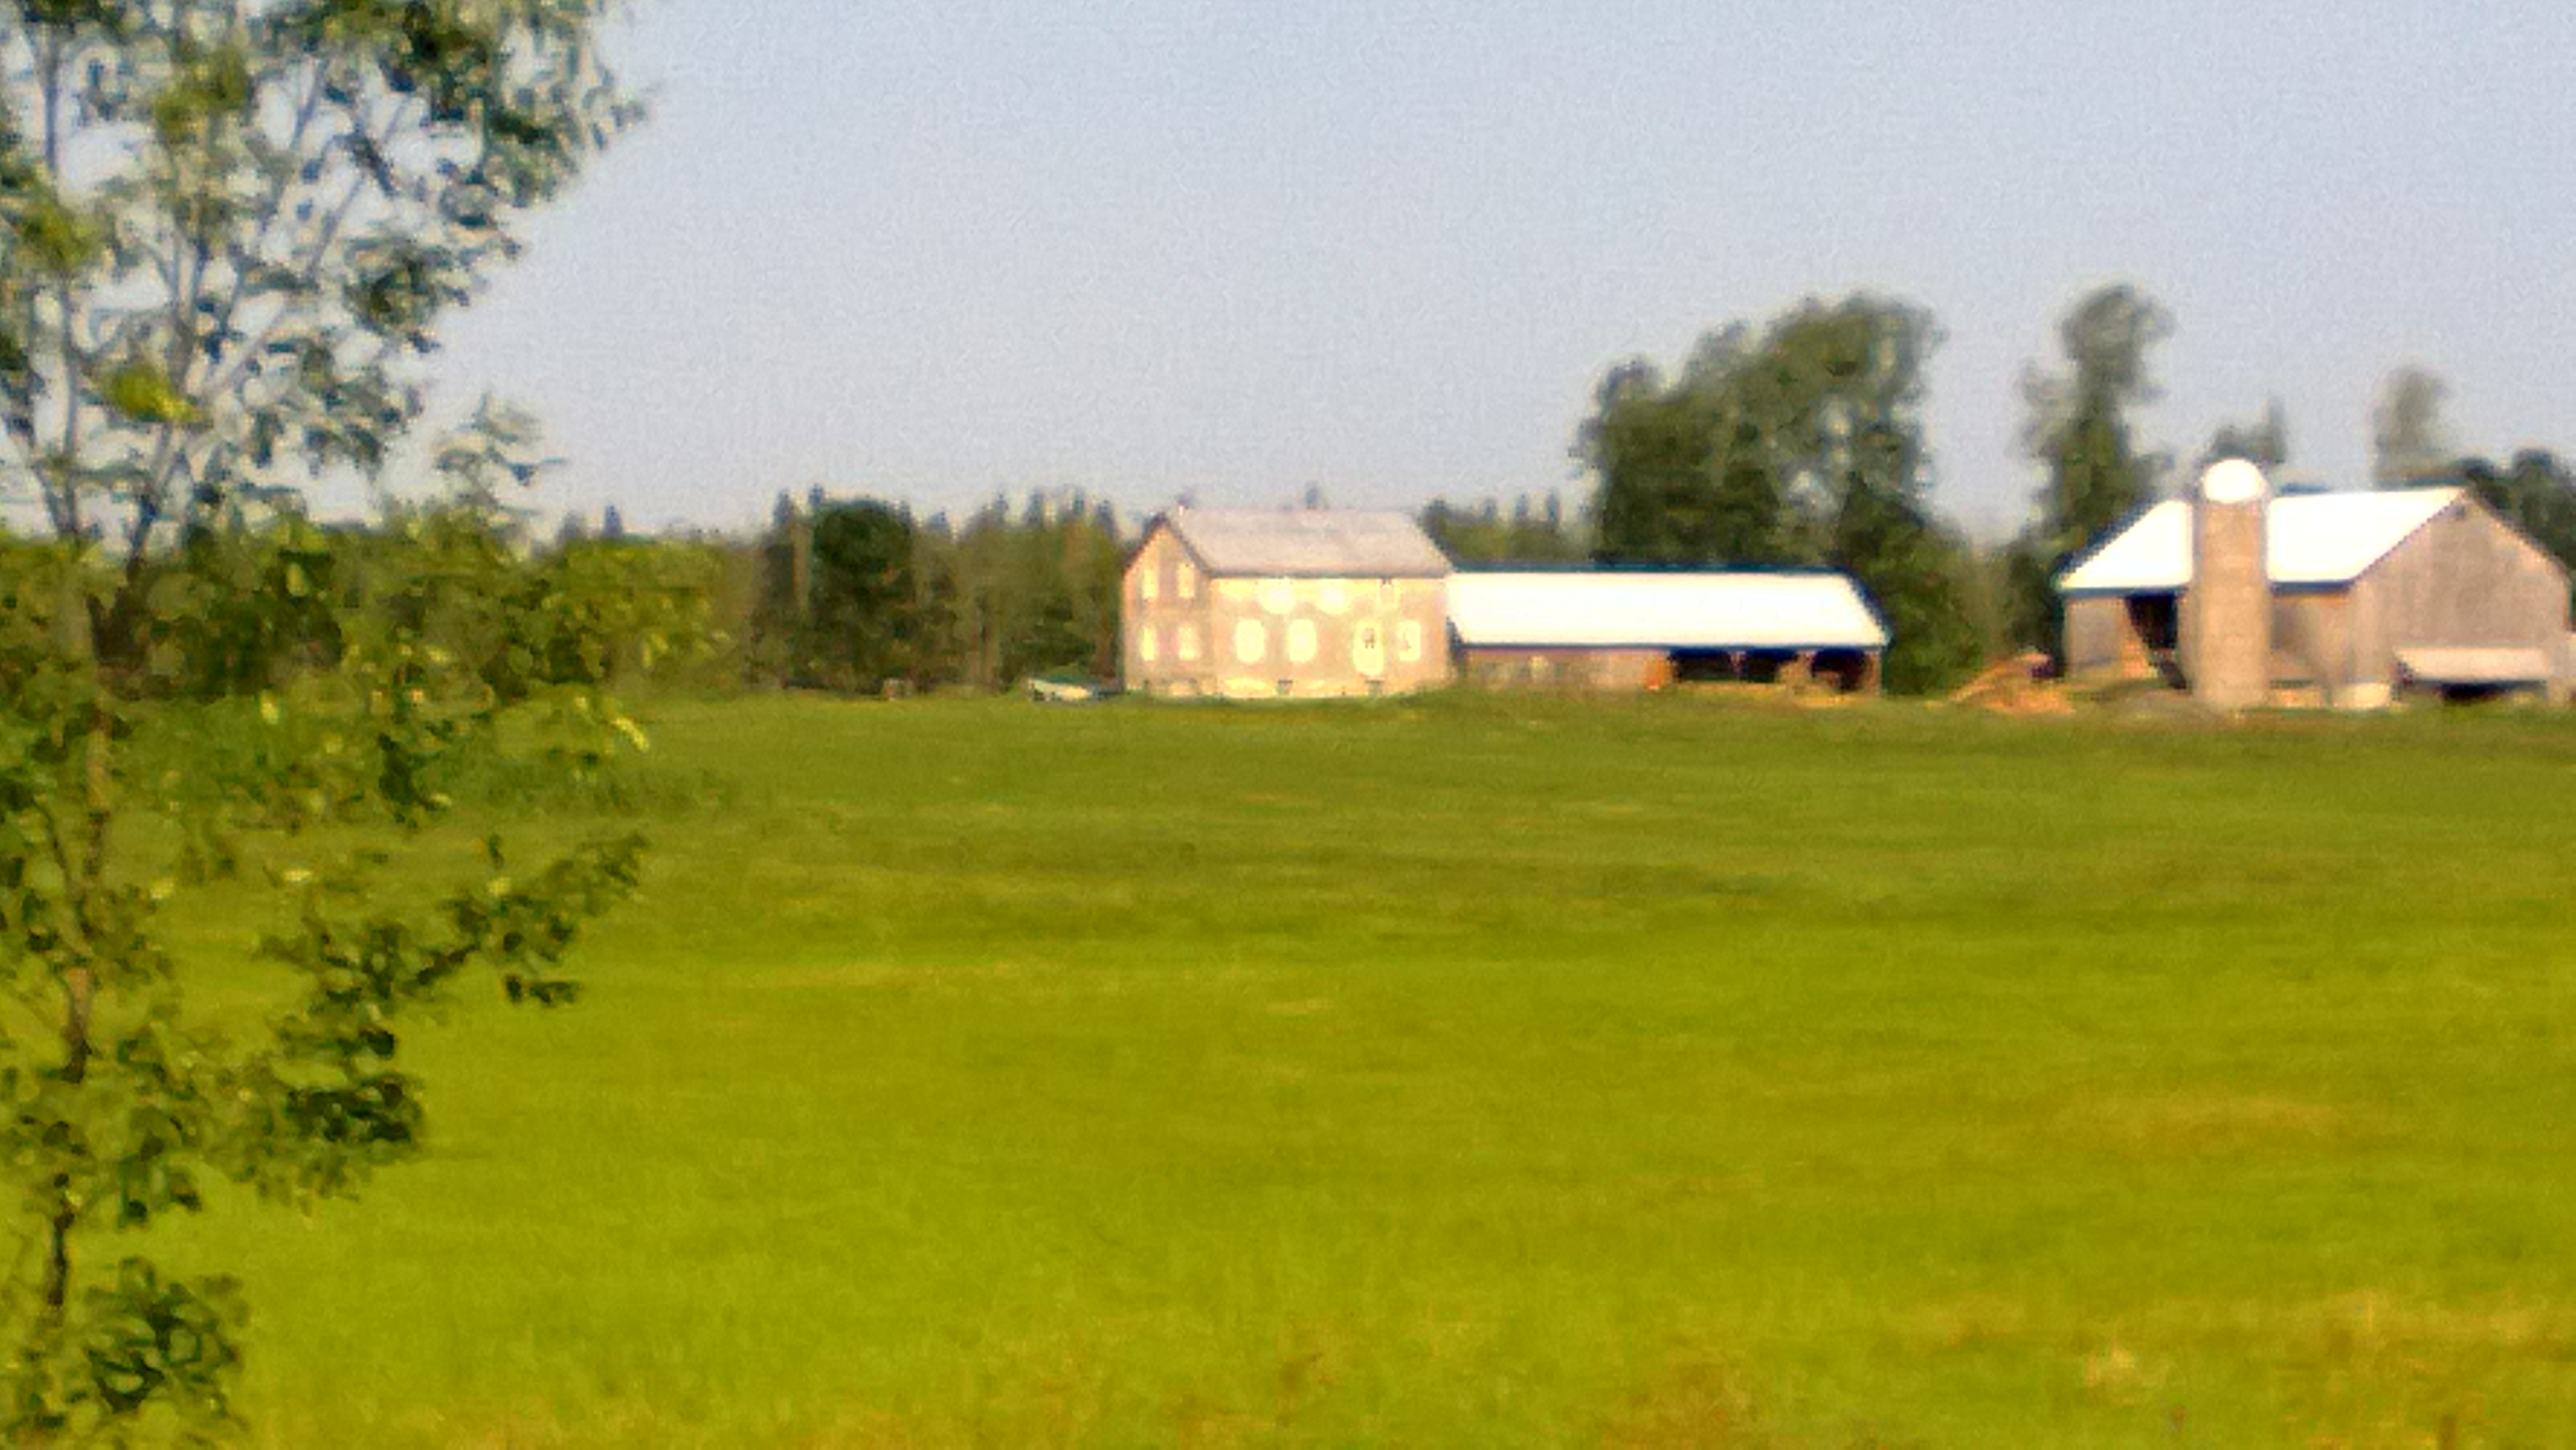 view of an old farm